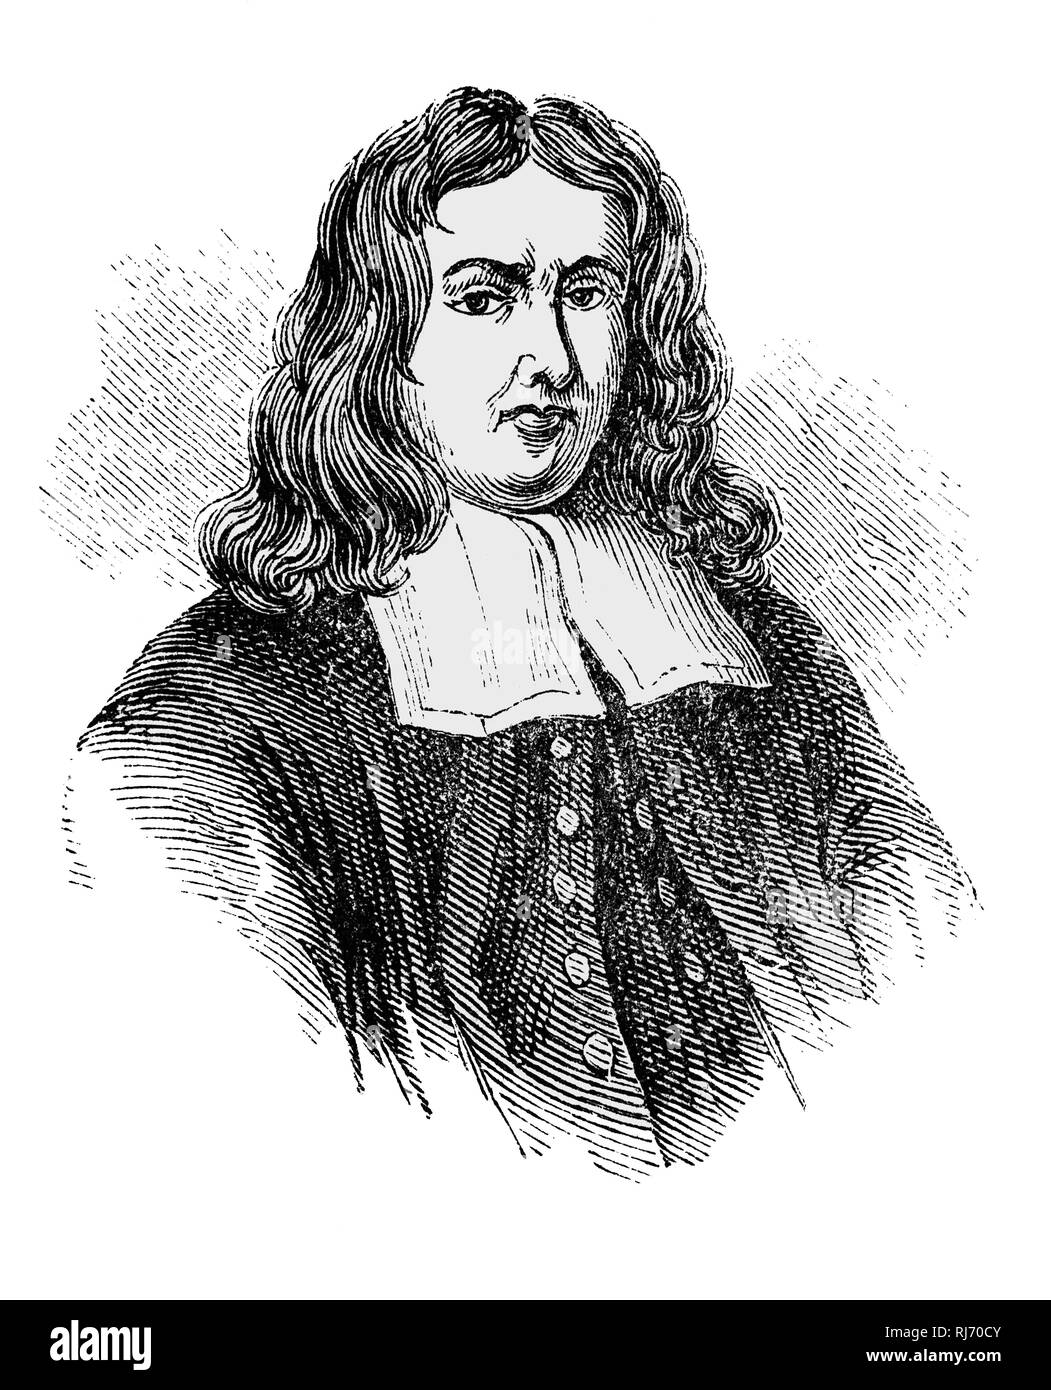 Thomas Sydenham (1624-1689) was an English physician. He was the author of Observationes Medicae which became a standard textbook of medicine for two centuries so that he became known as 'The English Hippocrates'. Among his many achievements was the discovery of a disease, Sydenham's Chorea, also known as St Vitus Dance. - Stock Image